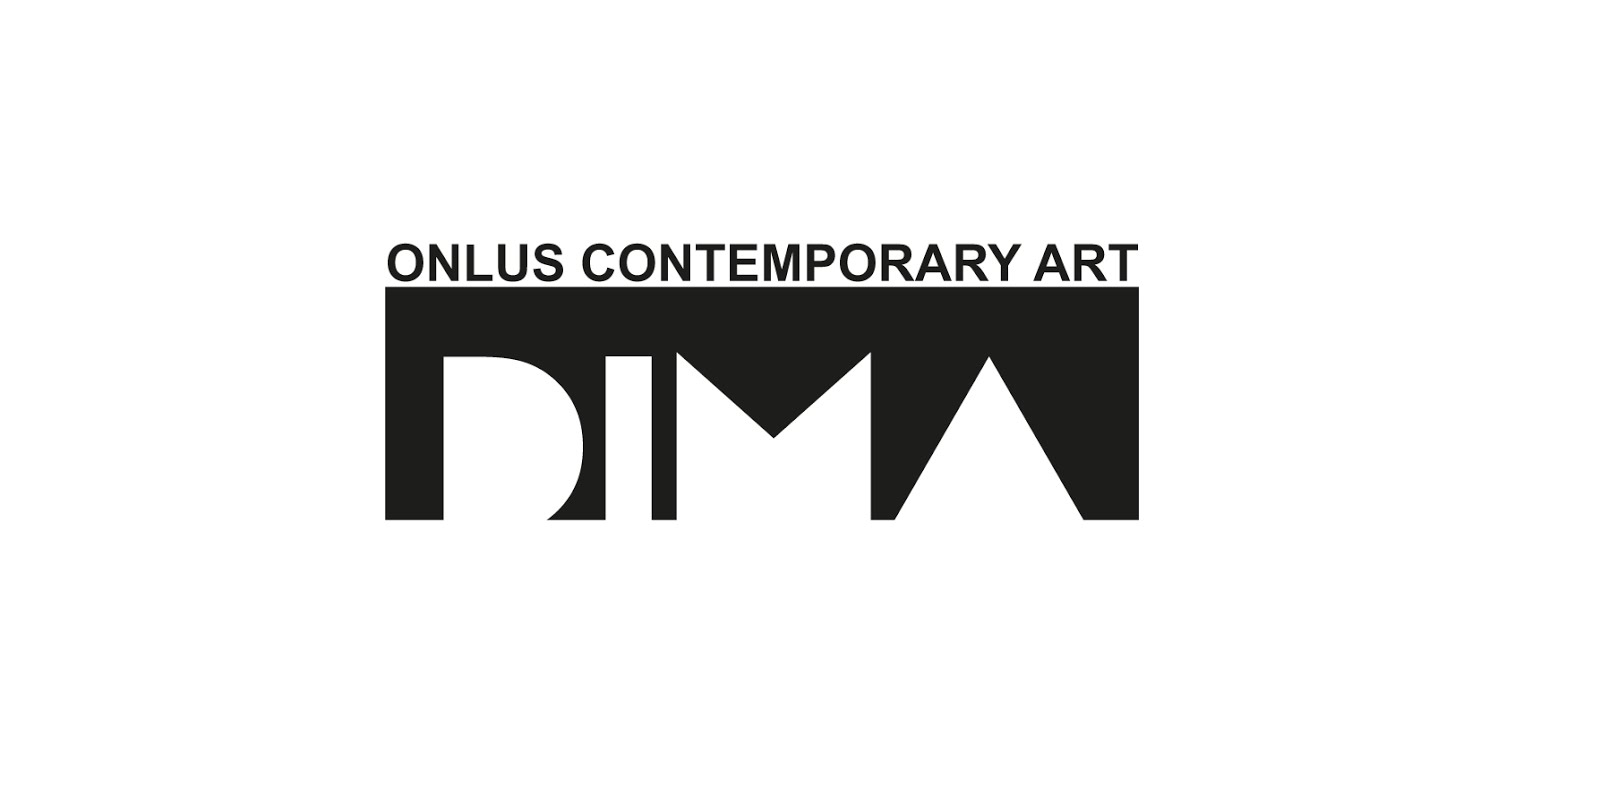 DIMA Contemporary Art - Onlus